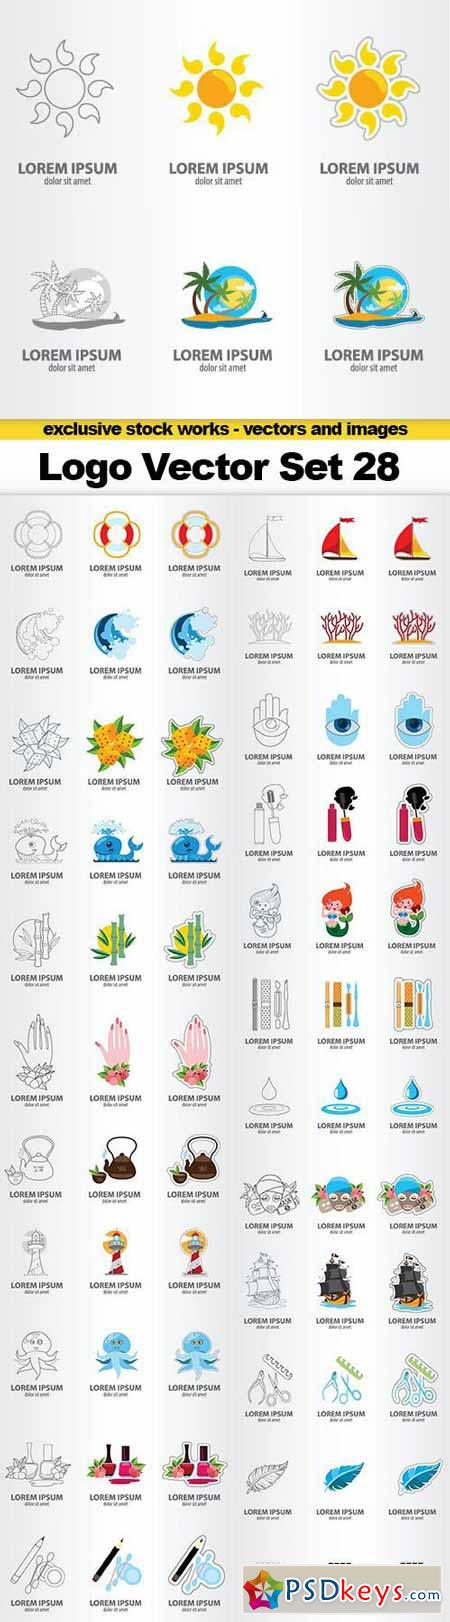 Logo Vector Set 28 - 25x EPS